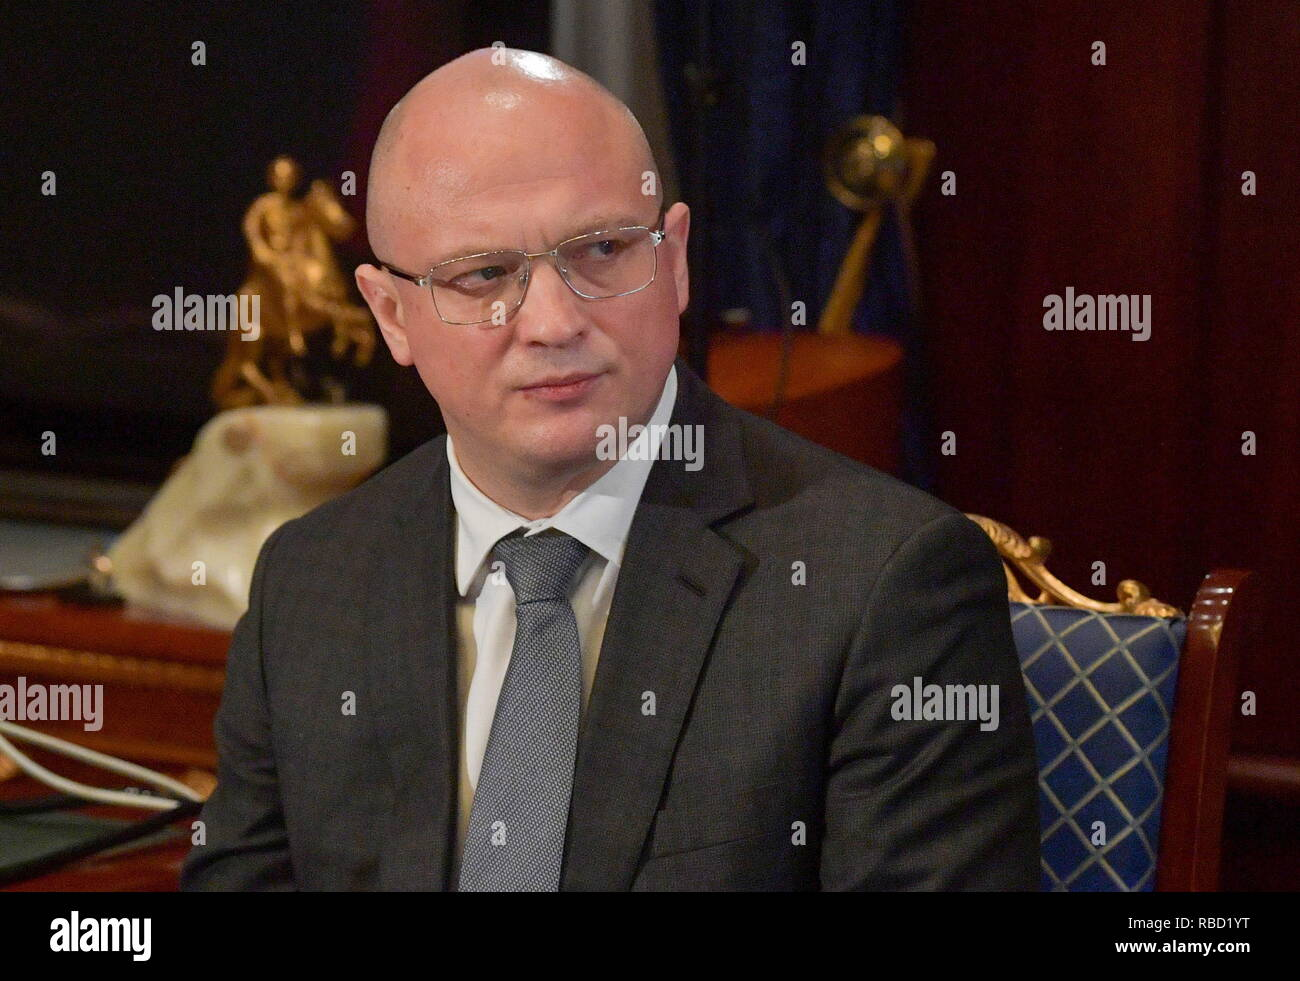 Russia. 09th Jan, 2019. MOSCOW REGION, RUSSIA - JANUARY 9, 2019: Russia's Deputy Construction, Housing and Utilities Minister Dmitry Volkov during a video conference meeting on the recovery operation after the Magnitogorsk domestic gas explosion at Gorki residence. Chelyabinsk Region Governor Boris Dubrovsky takes part in the meeting via a video link. Alexander Astafyev/Russian Government Press Office/TASS Credit: ITAR-TASS News Agency/Alamy Live News - Stock Image